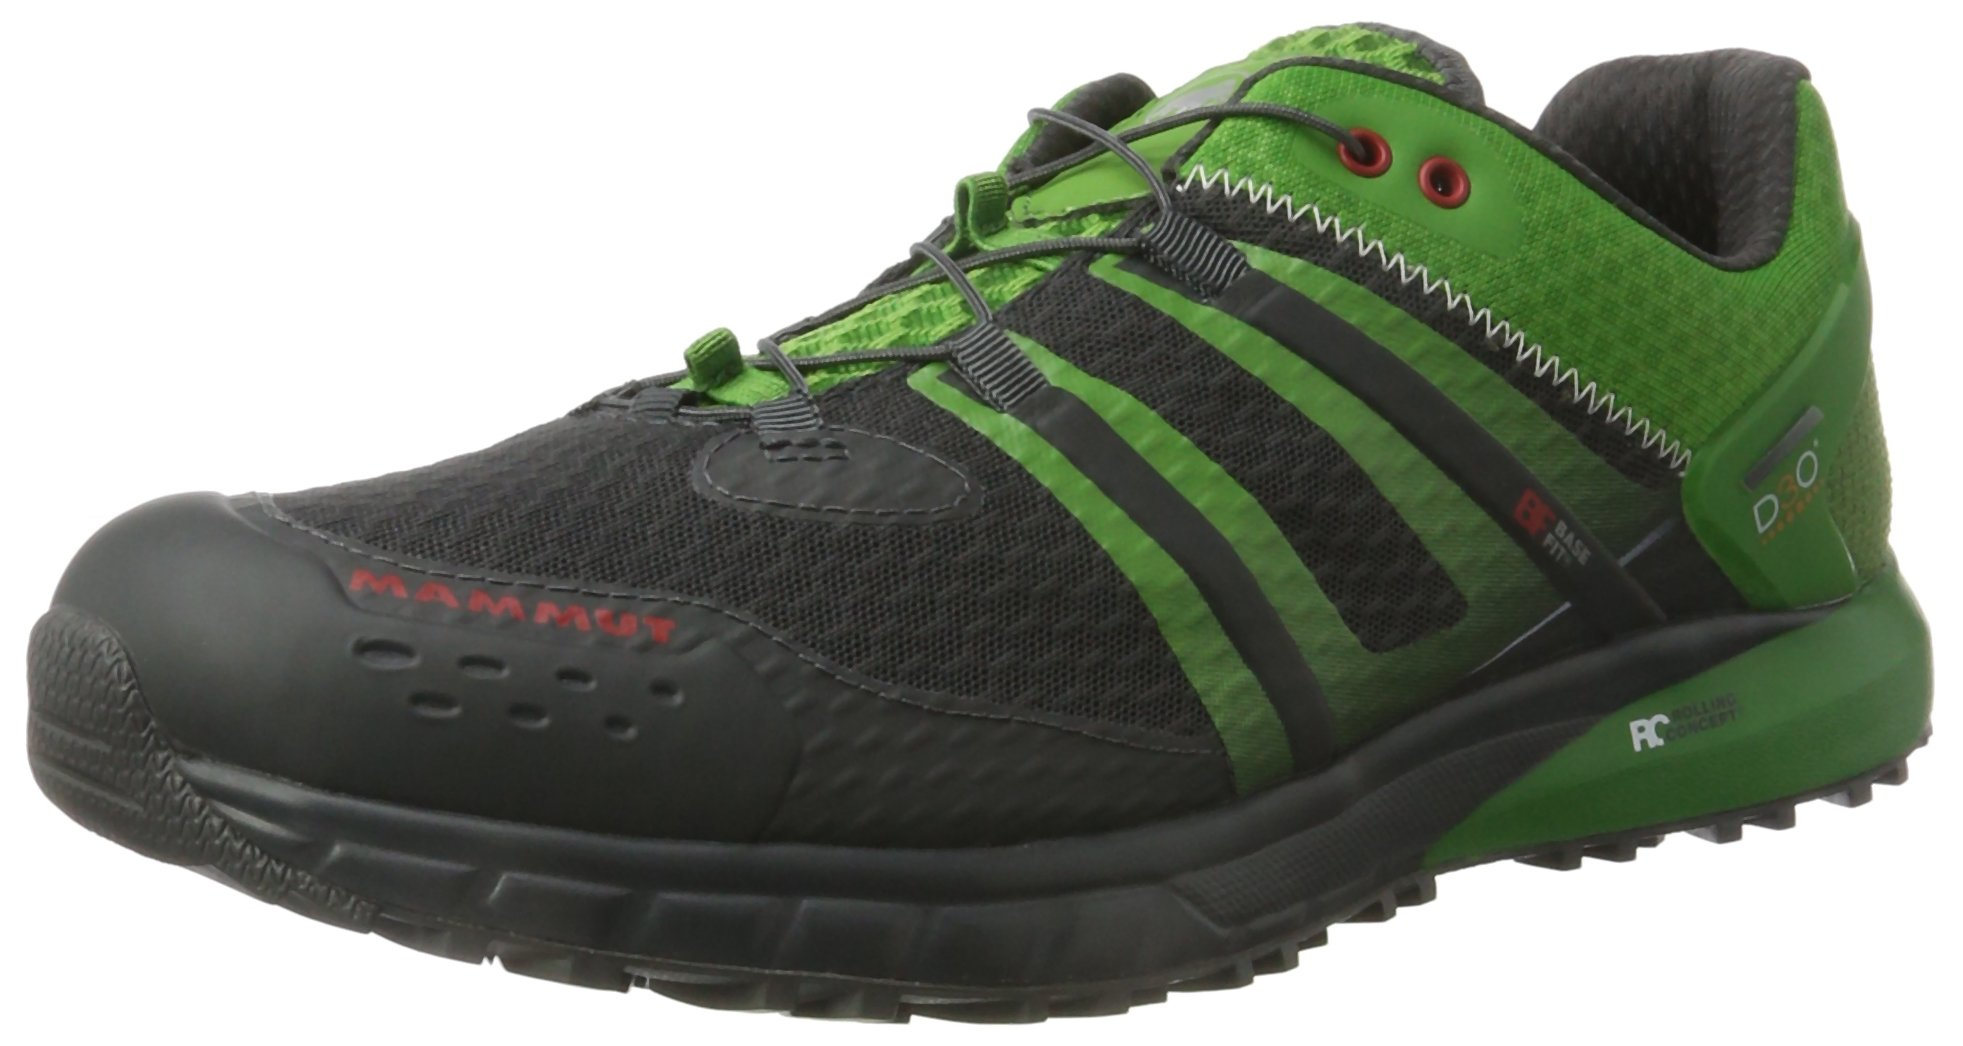 Mammut MTR 201-II Low Trail Running Shoe - 3030-2901-714-US 9